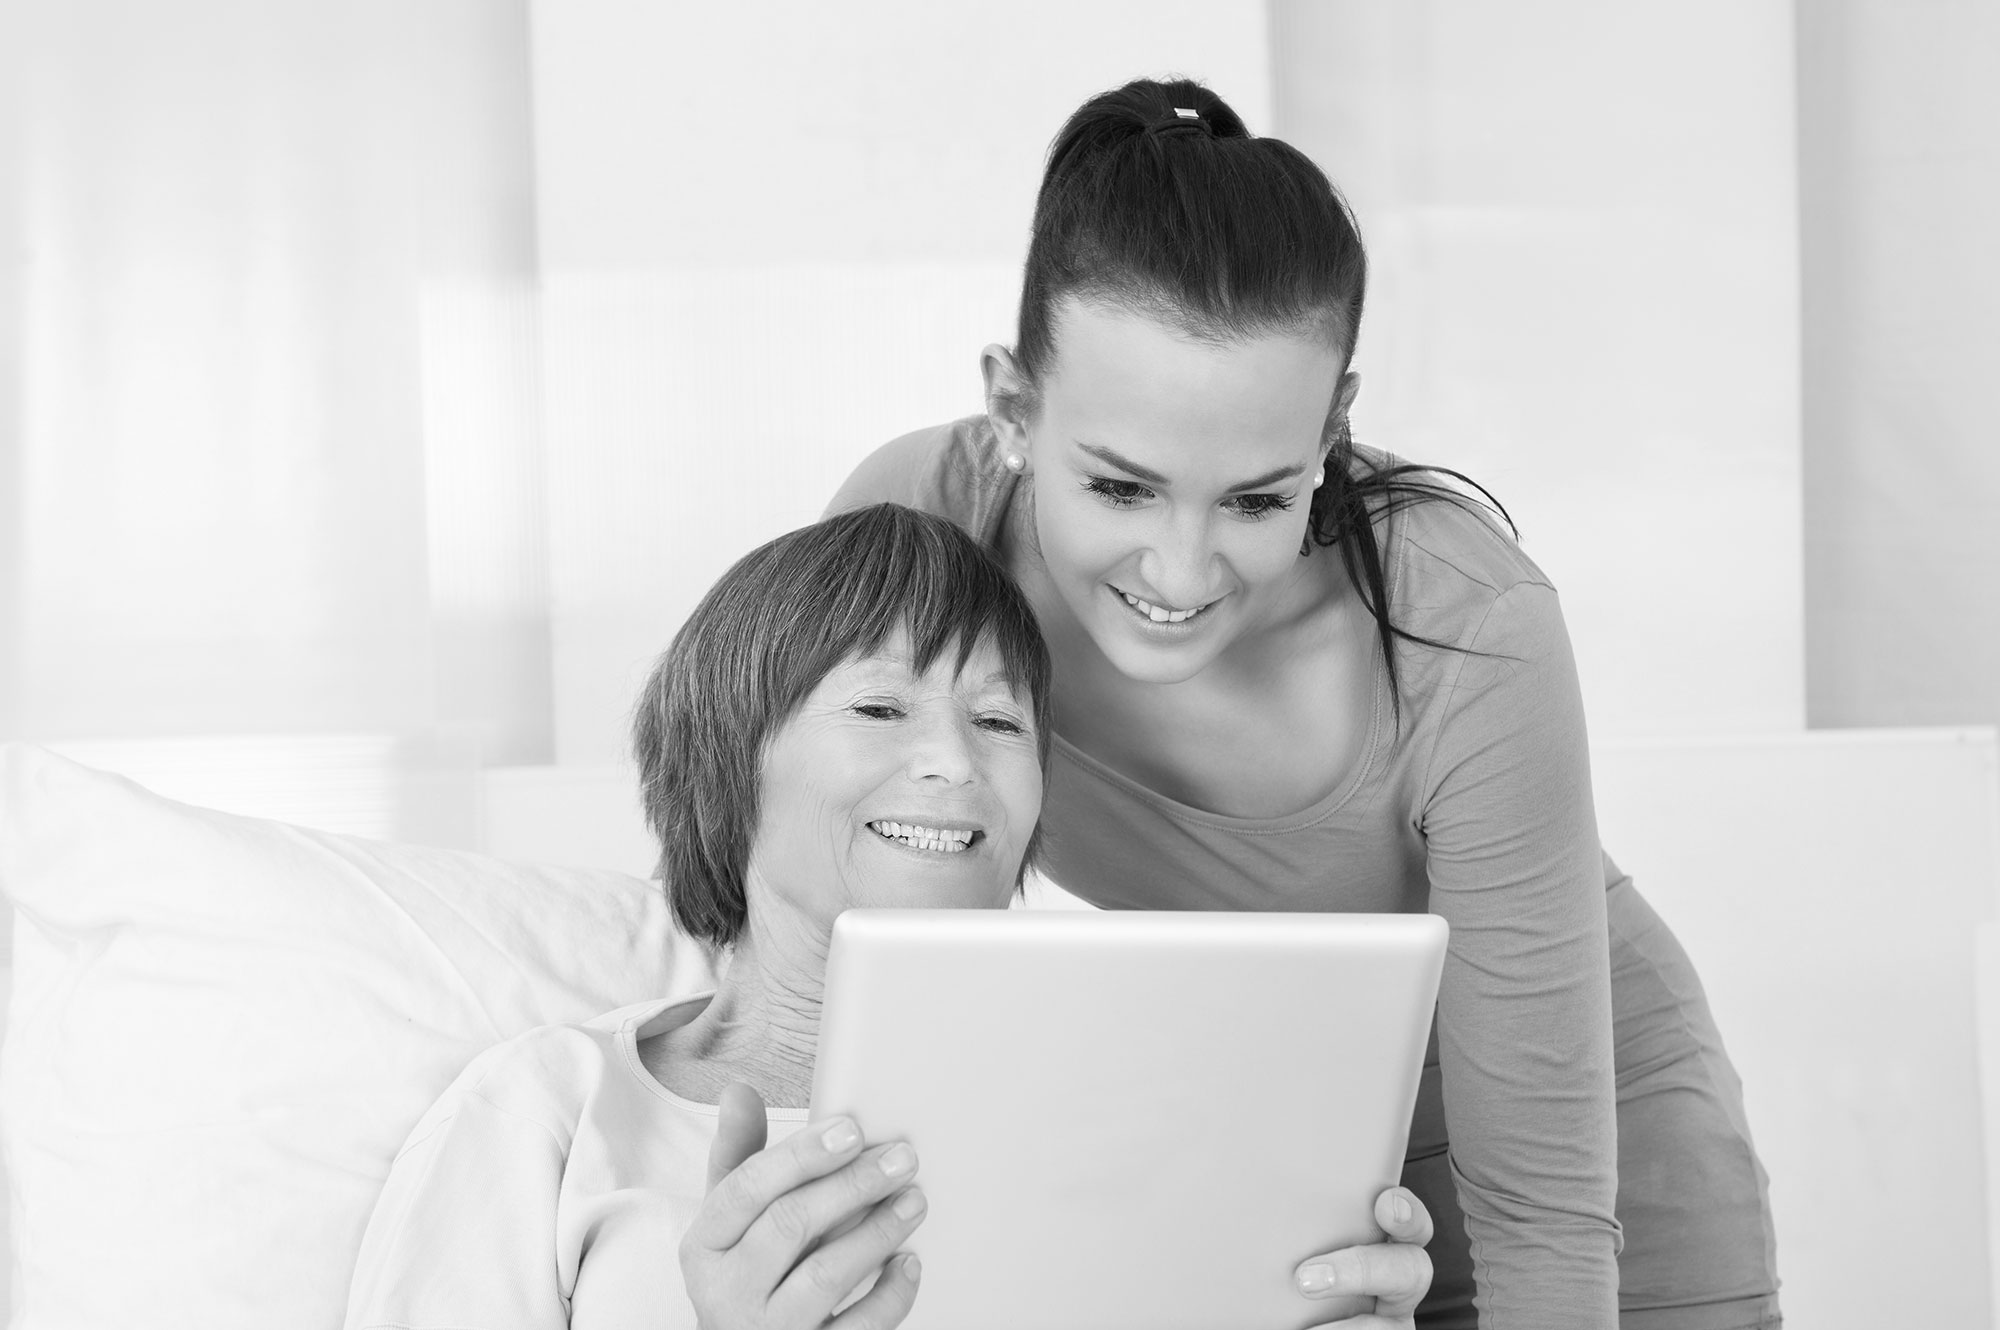 A young woman helping an older woman use a tablet